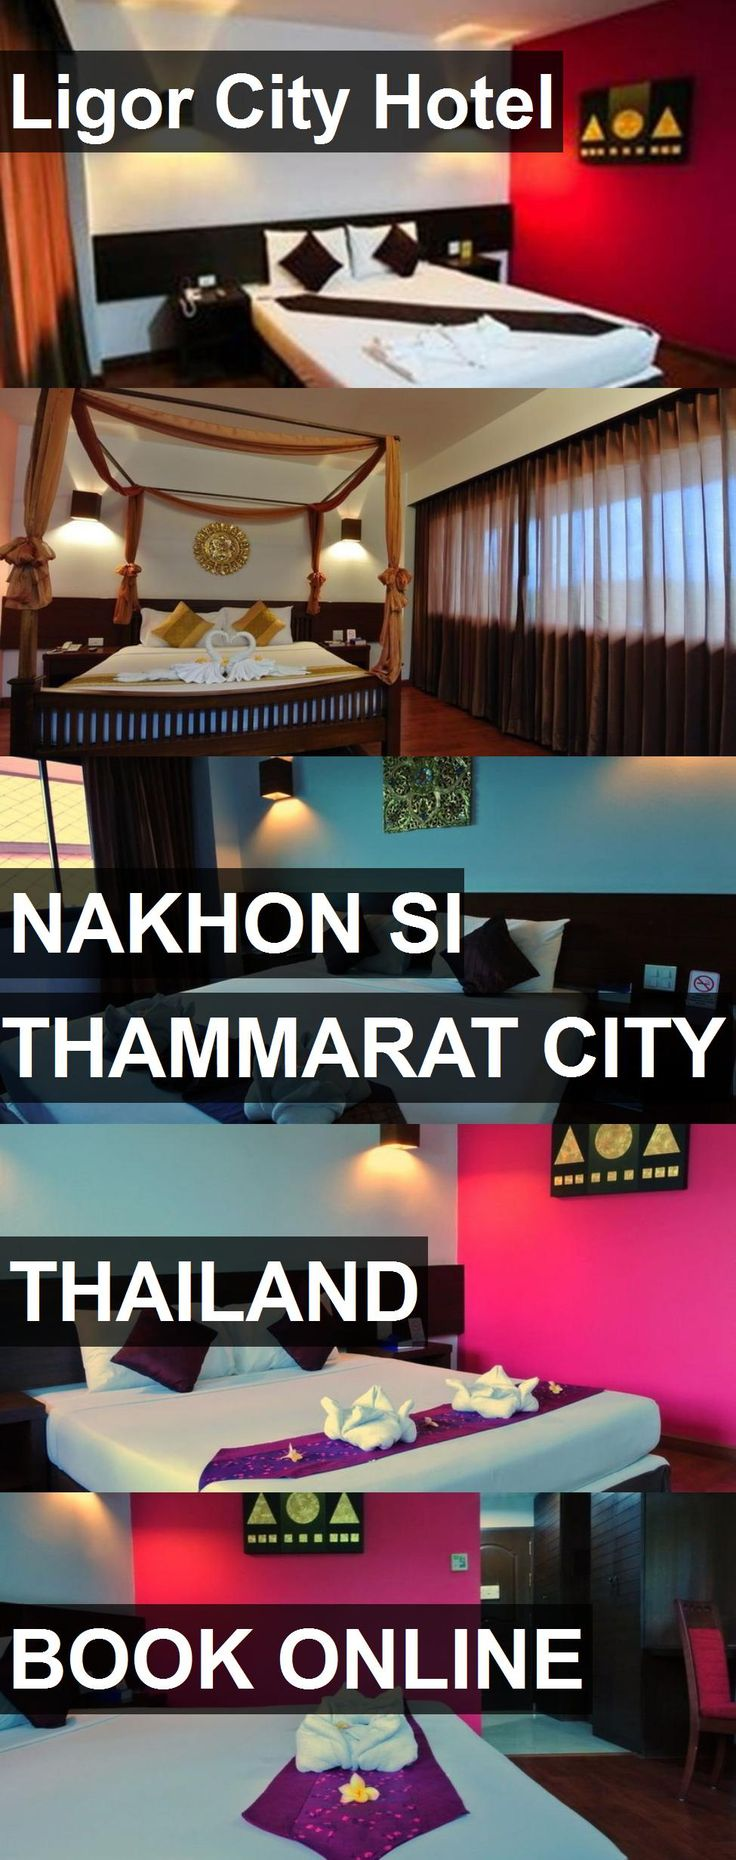 Ligor City Hotel in Nakhon Si Thammarat City, Thailand. For more information, photos, reviews and best prices please follow the link. #Thailand #NakhonSiThammaratCity #travel #vacation #hotel